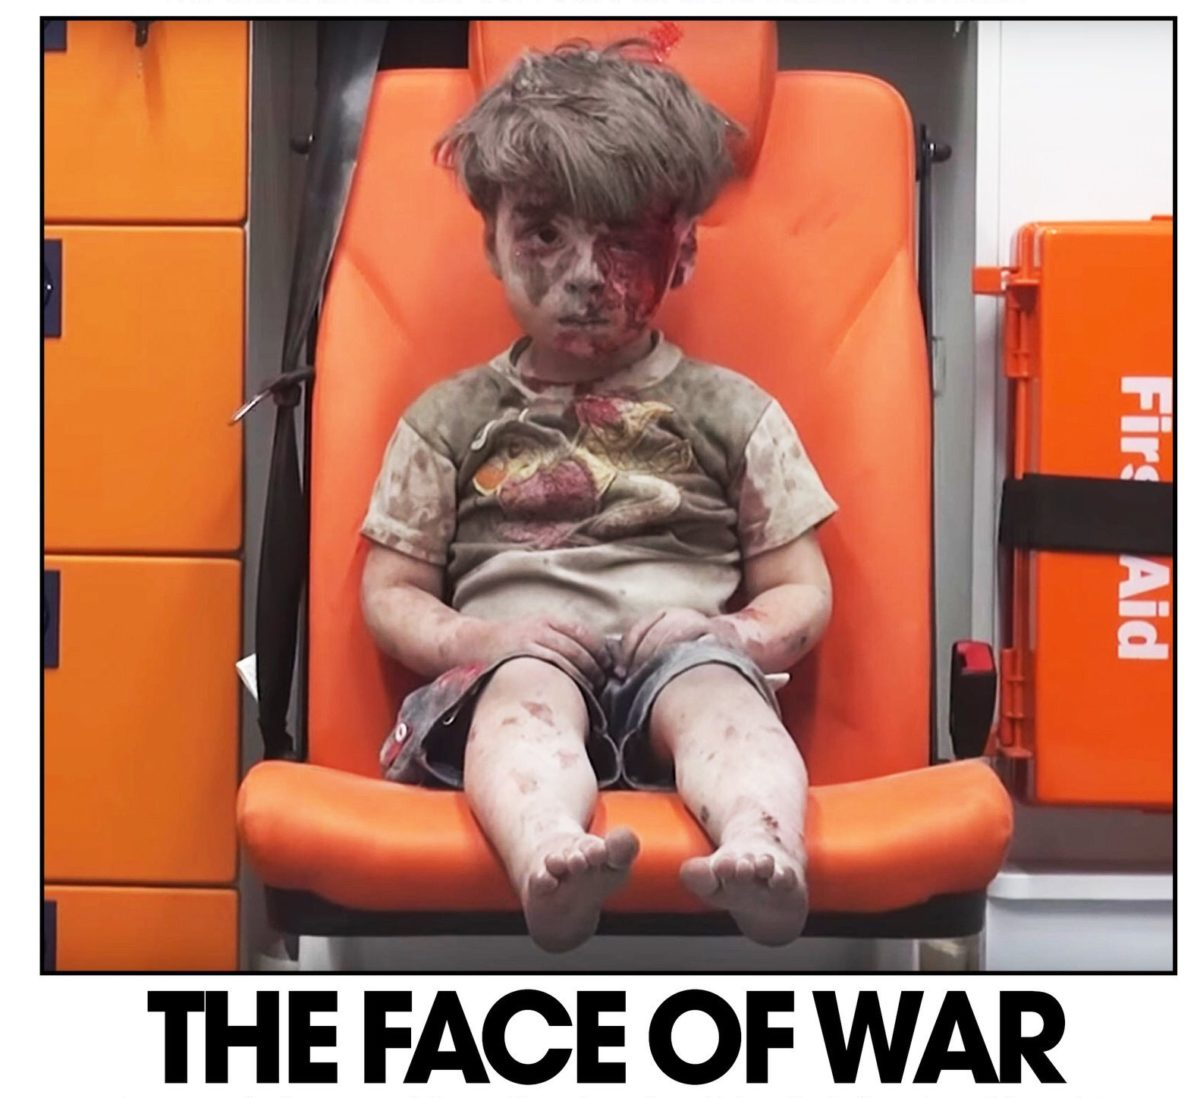 National dailies splash on iconic picture of Syrian boy in ambulance, declaring him 'new face of tragic war'